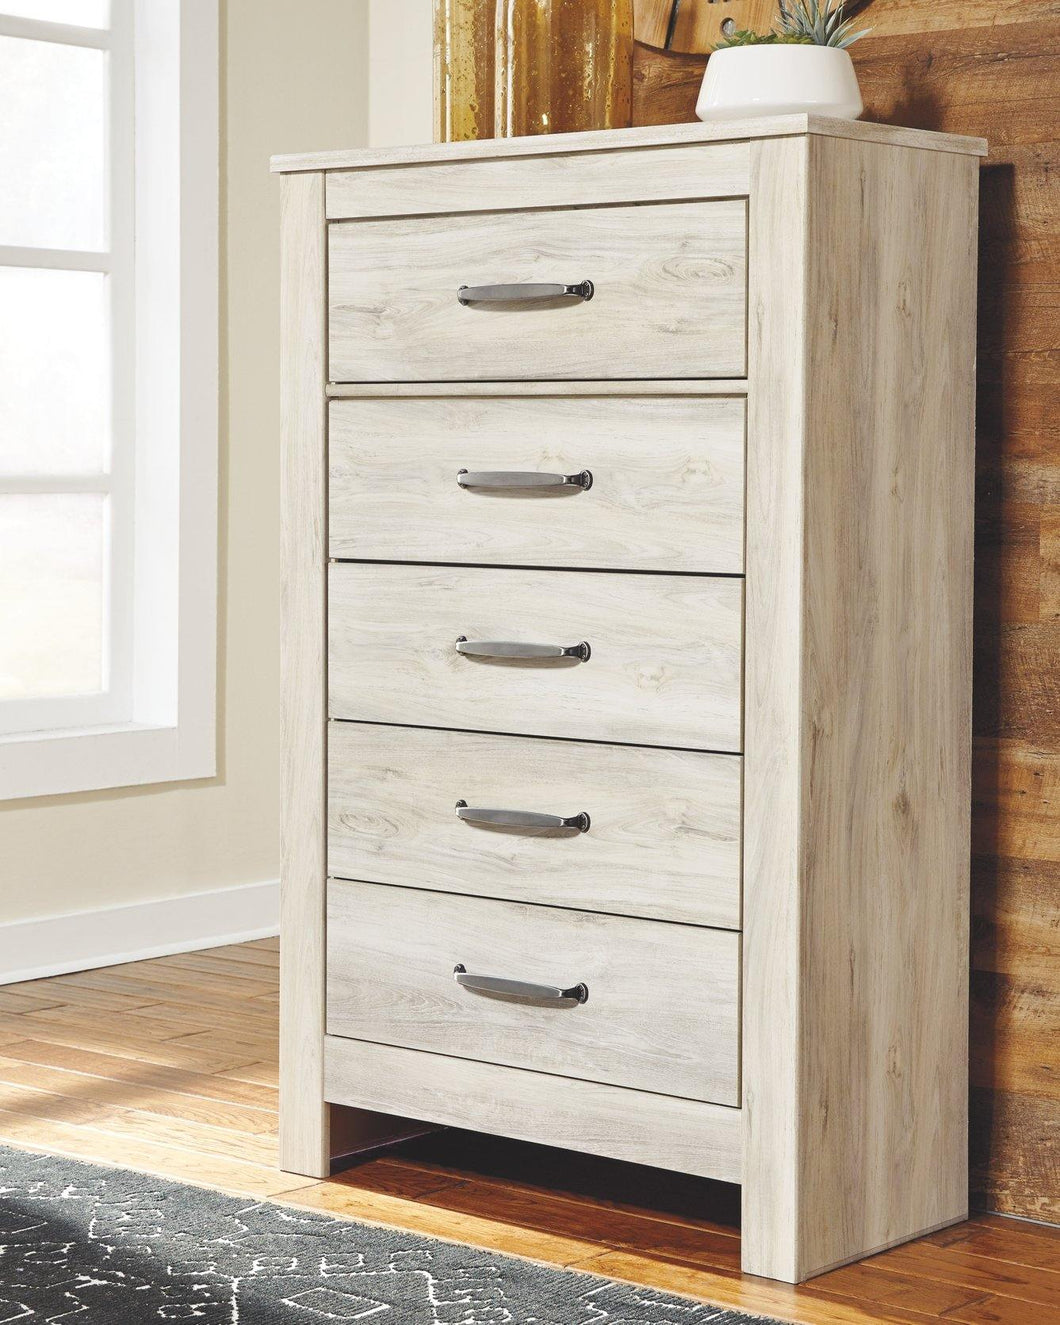 Bellaby Chest of Drawers B331-46 By Ashley Furniture from sofafair